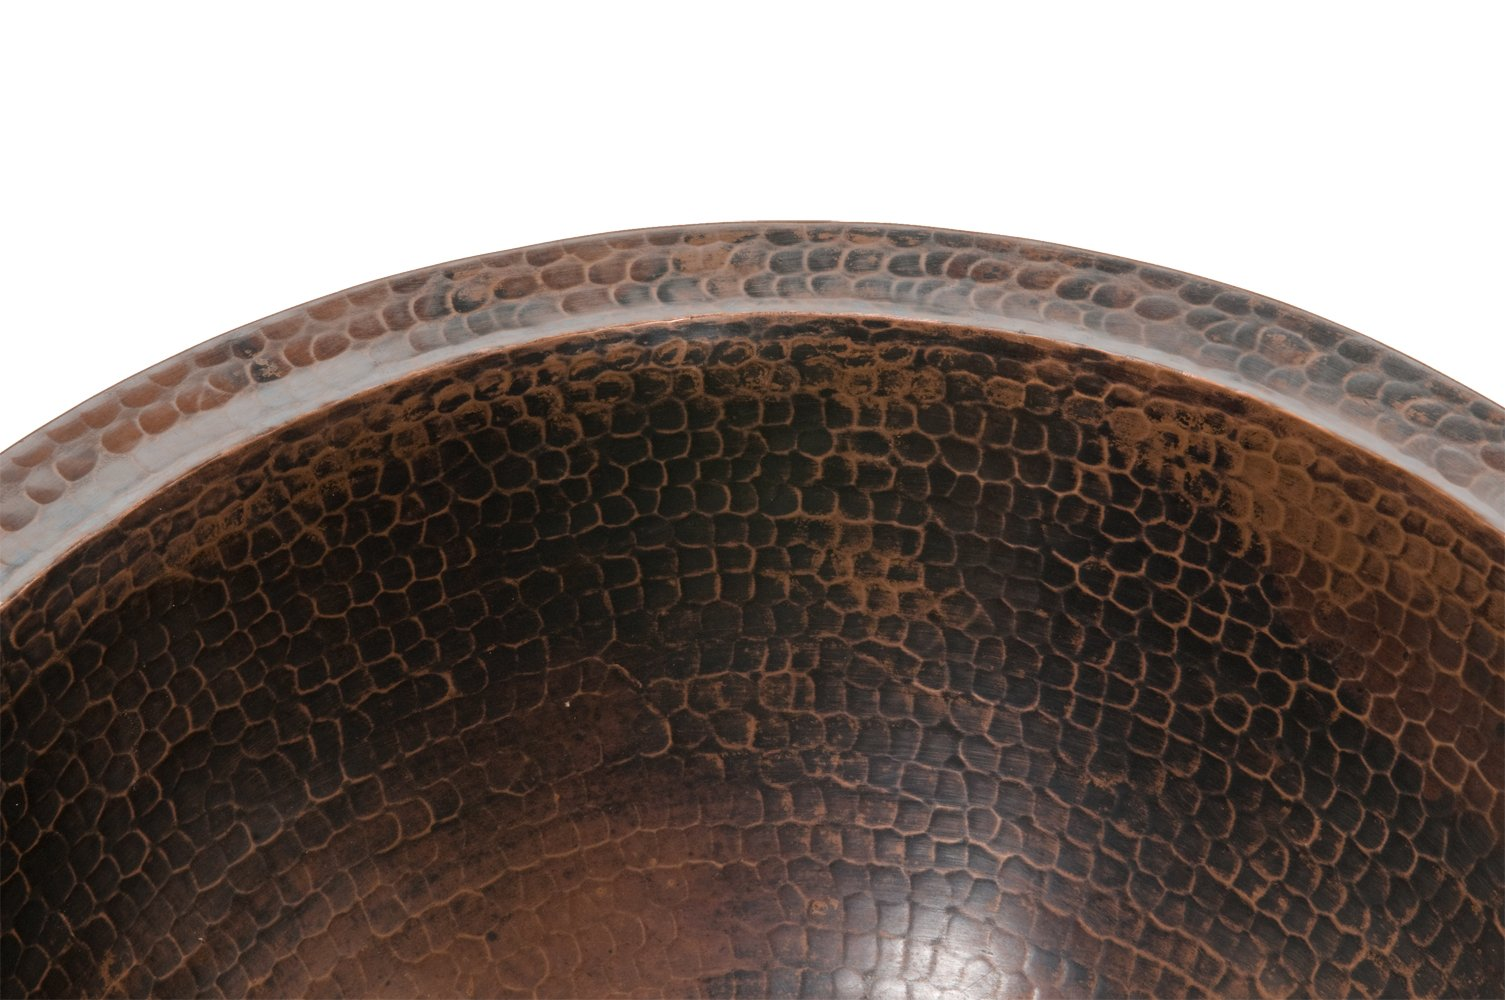 Premier Copper Products LR14FDB Small Round Under Counter Hammered Copper Sink, Oil Rubbed Bronze by Premier Copper Products (Image #3)